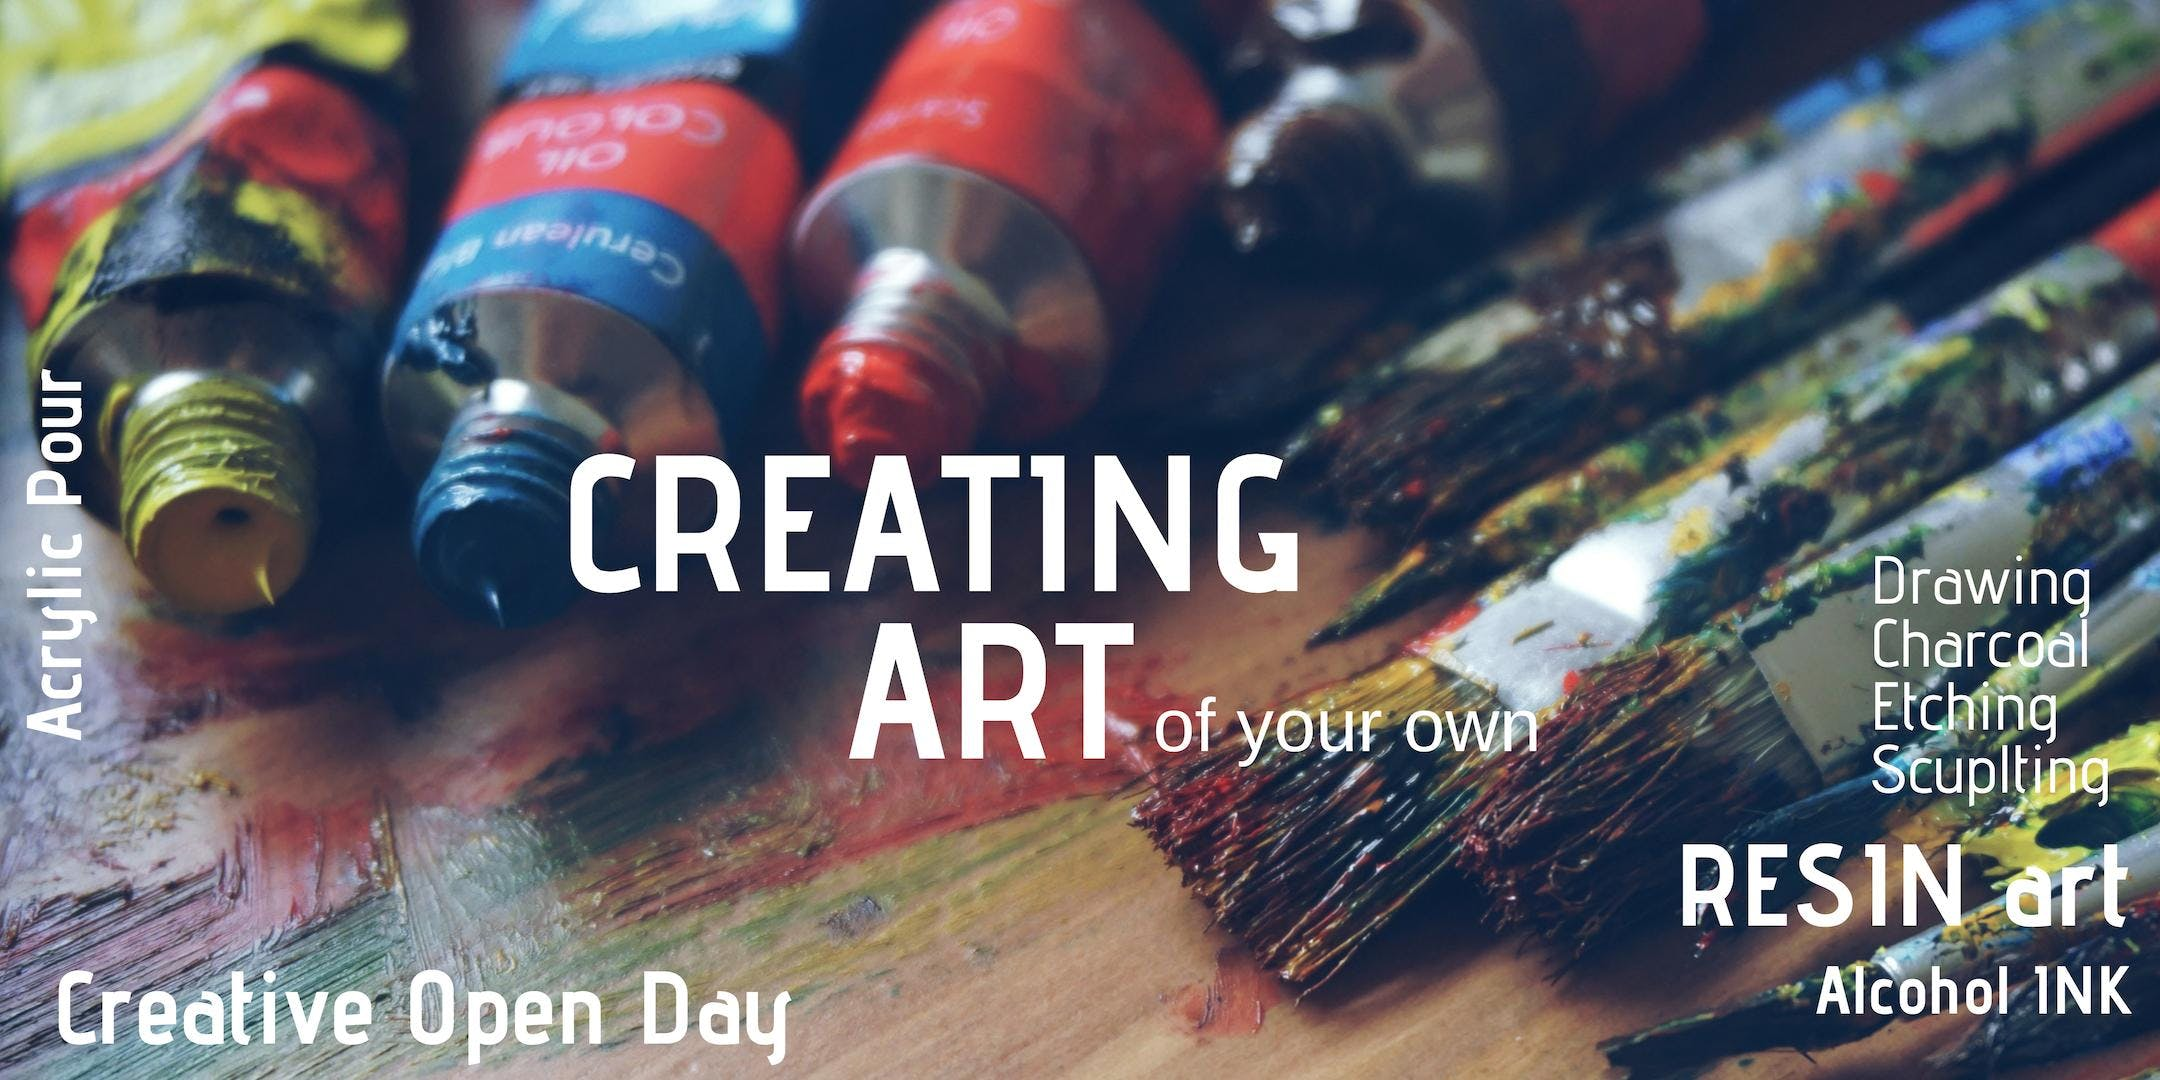 Creating Art - Saturday 9th Mar 10:00am